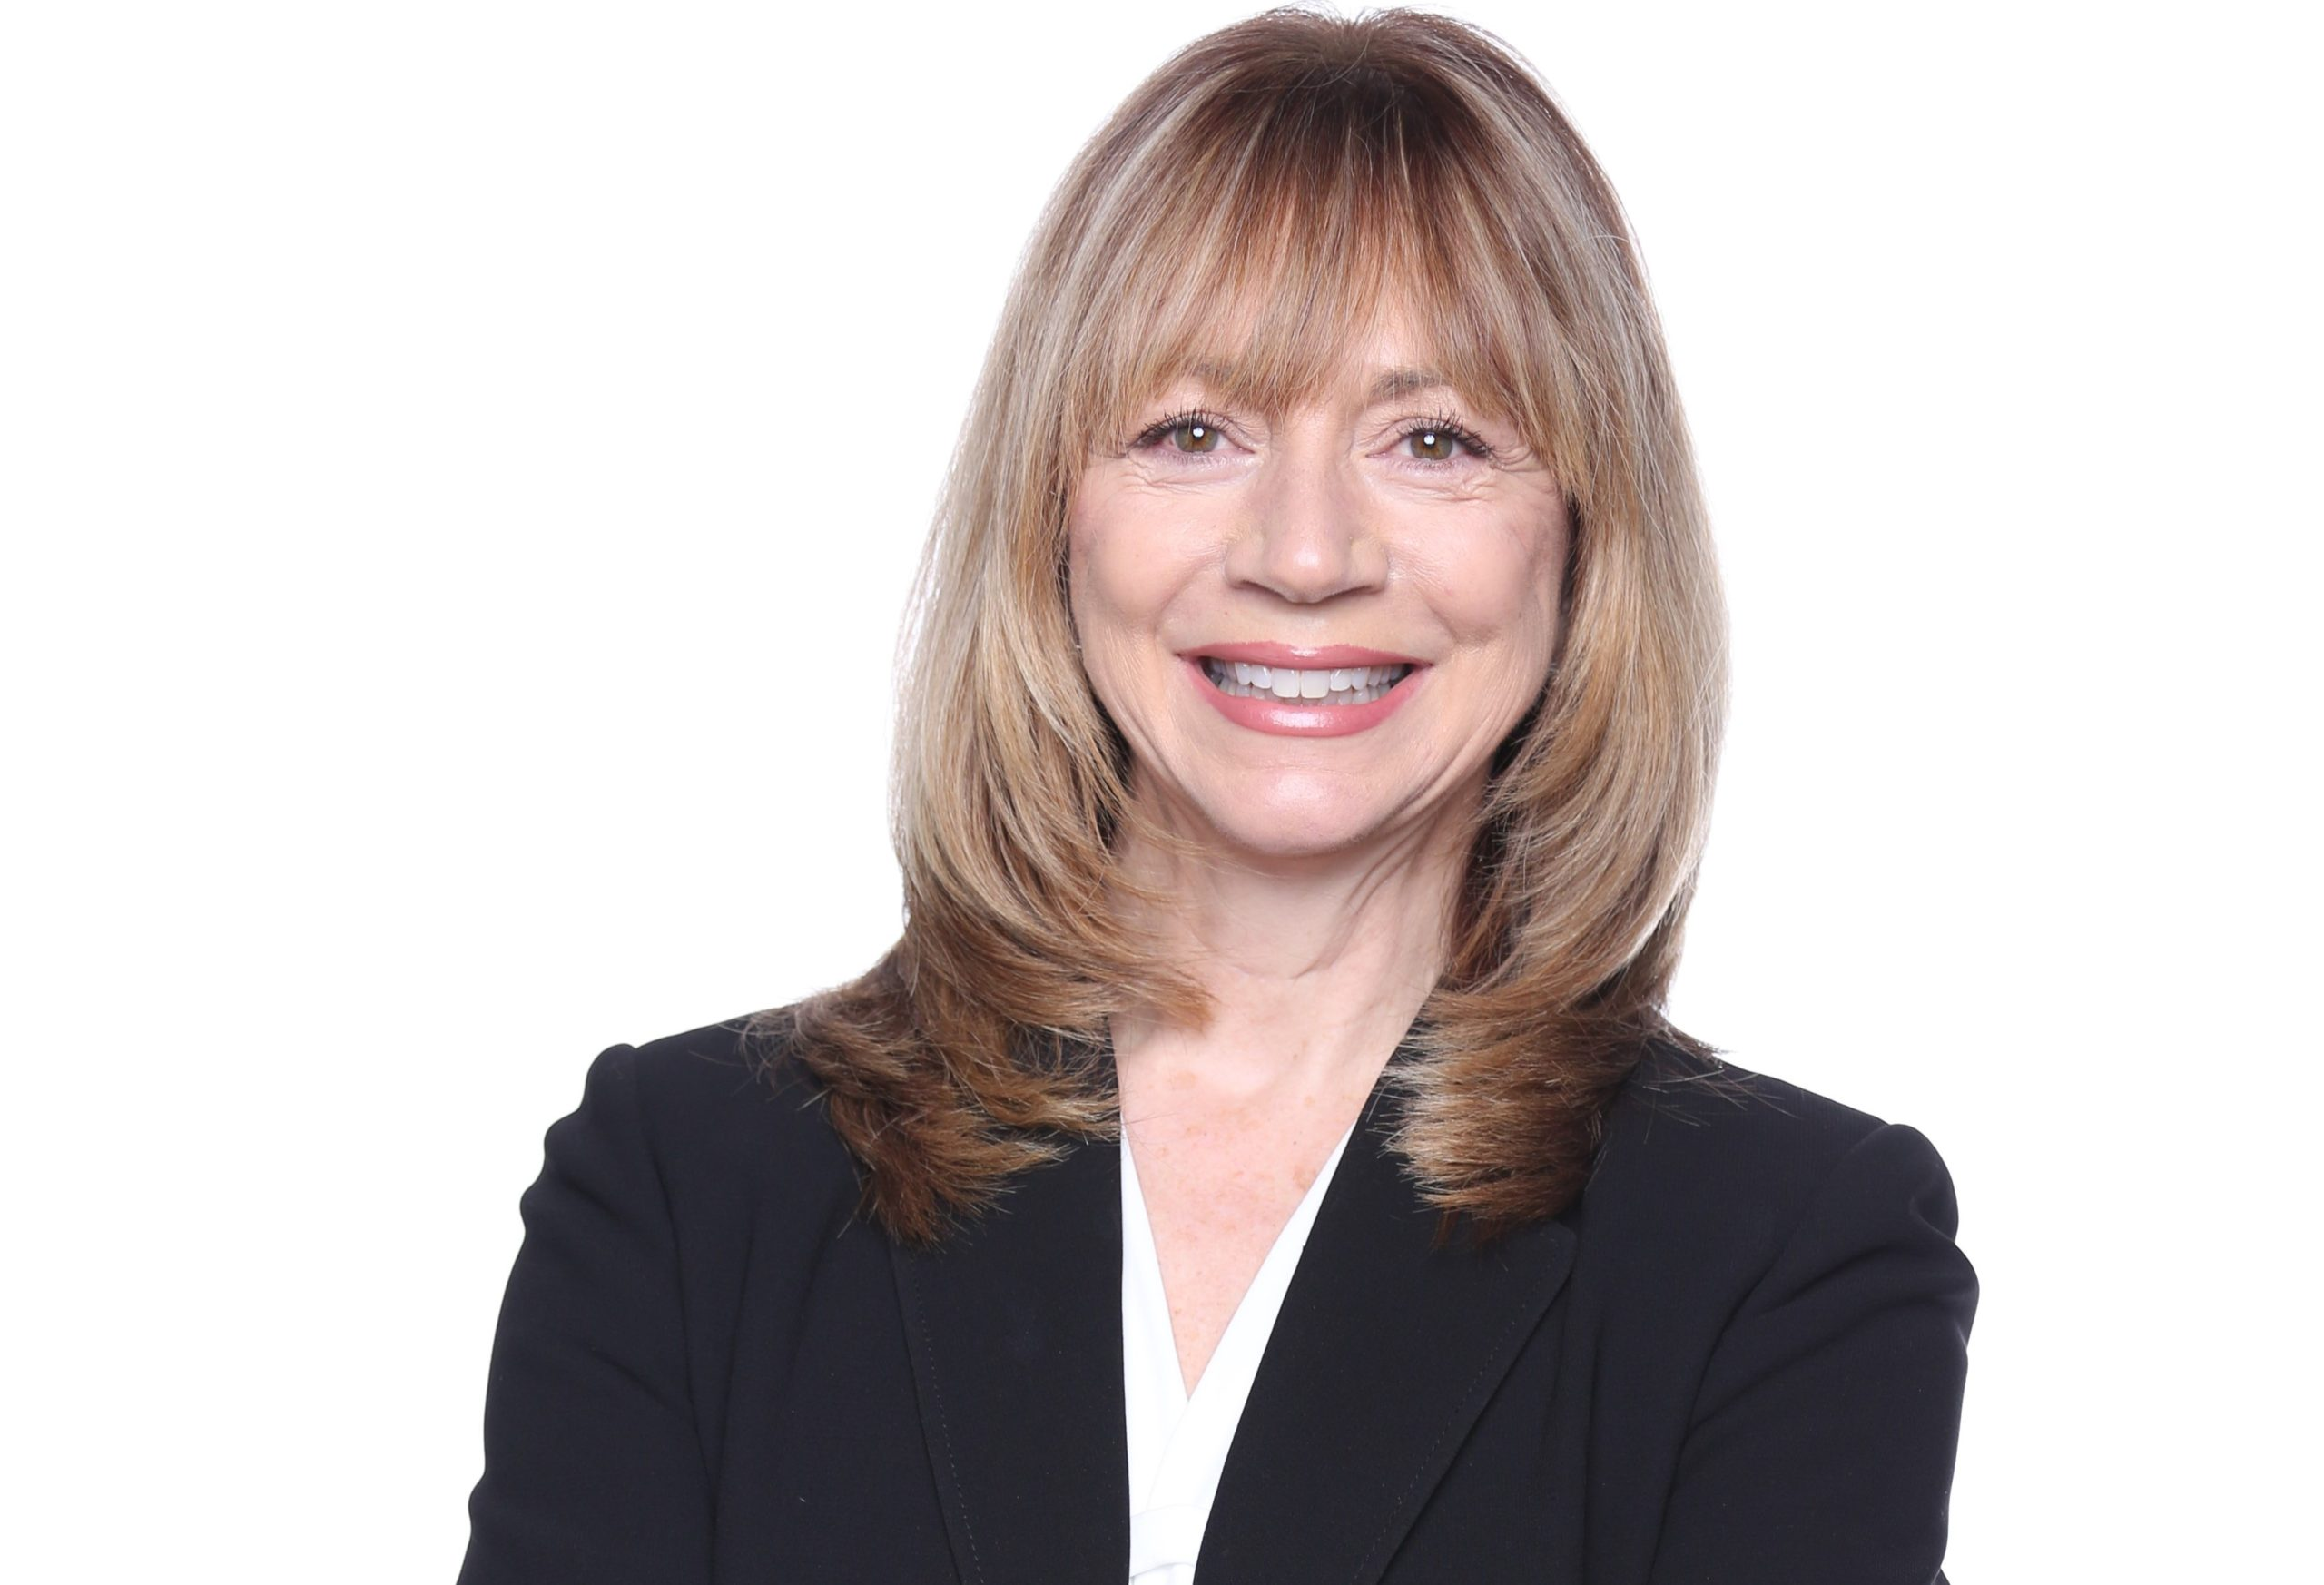 Hankin Group's Stacy Martin Elected First Female President of CCIM Institute's Local Chapter